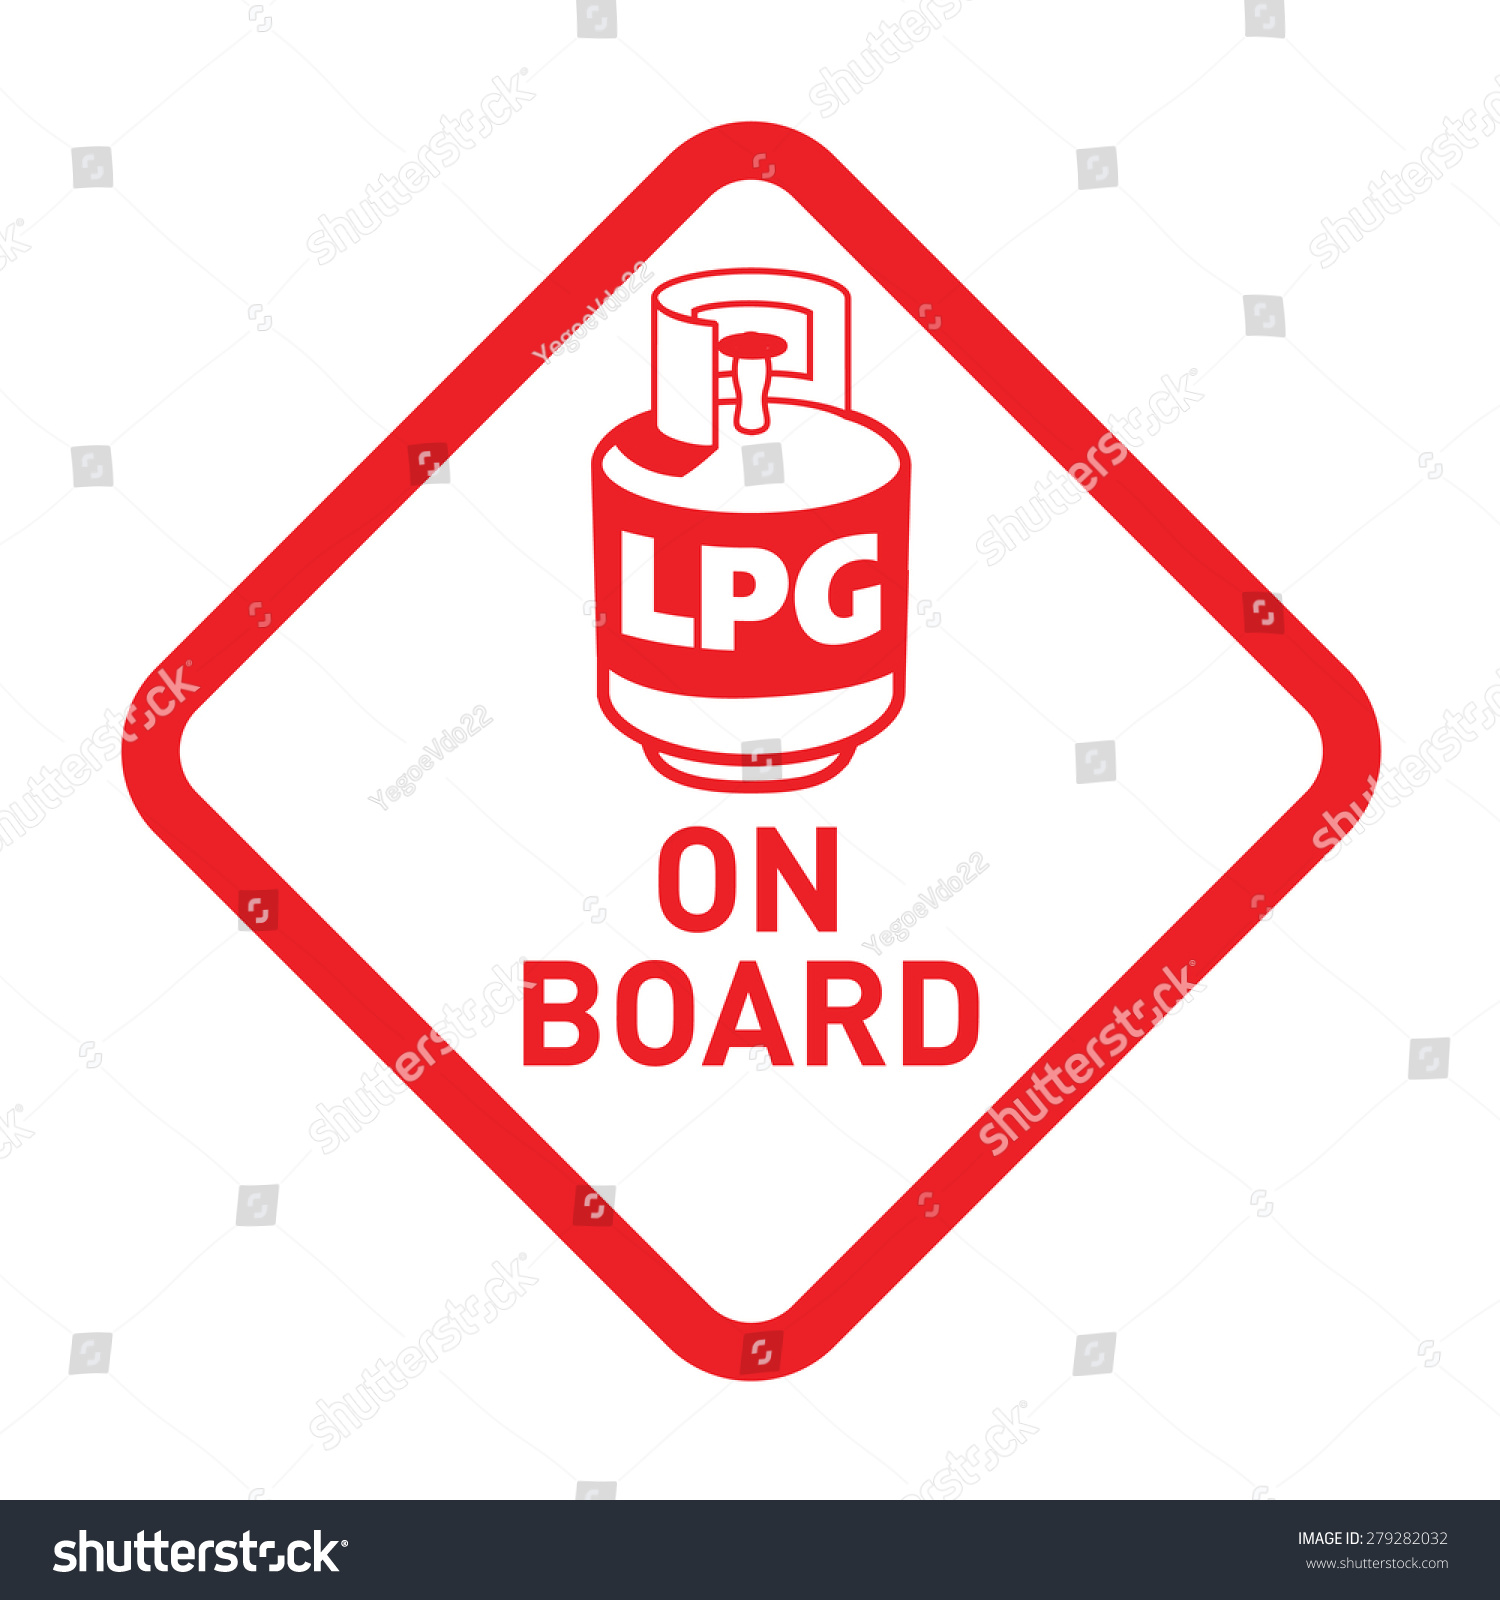 """aygaz liquefied petroleum gas 1 liquefied petroleum gas this leaflet is prepared by the caravan club as part of its service to members the contents are believed to be correct at the time of publication, but the current position may be checked with the club""""s technical advice."""